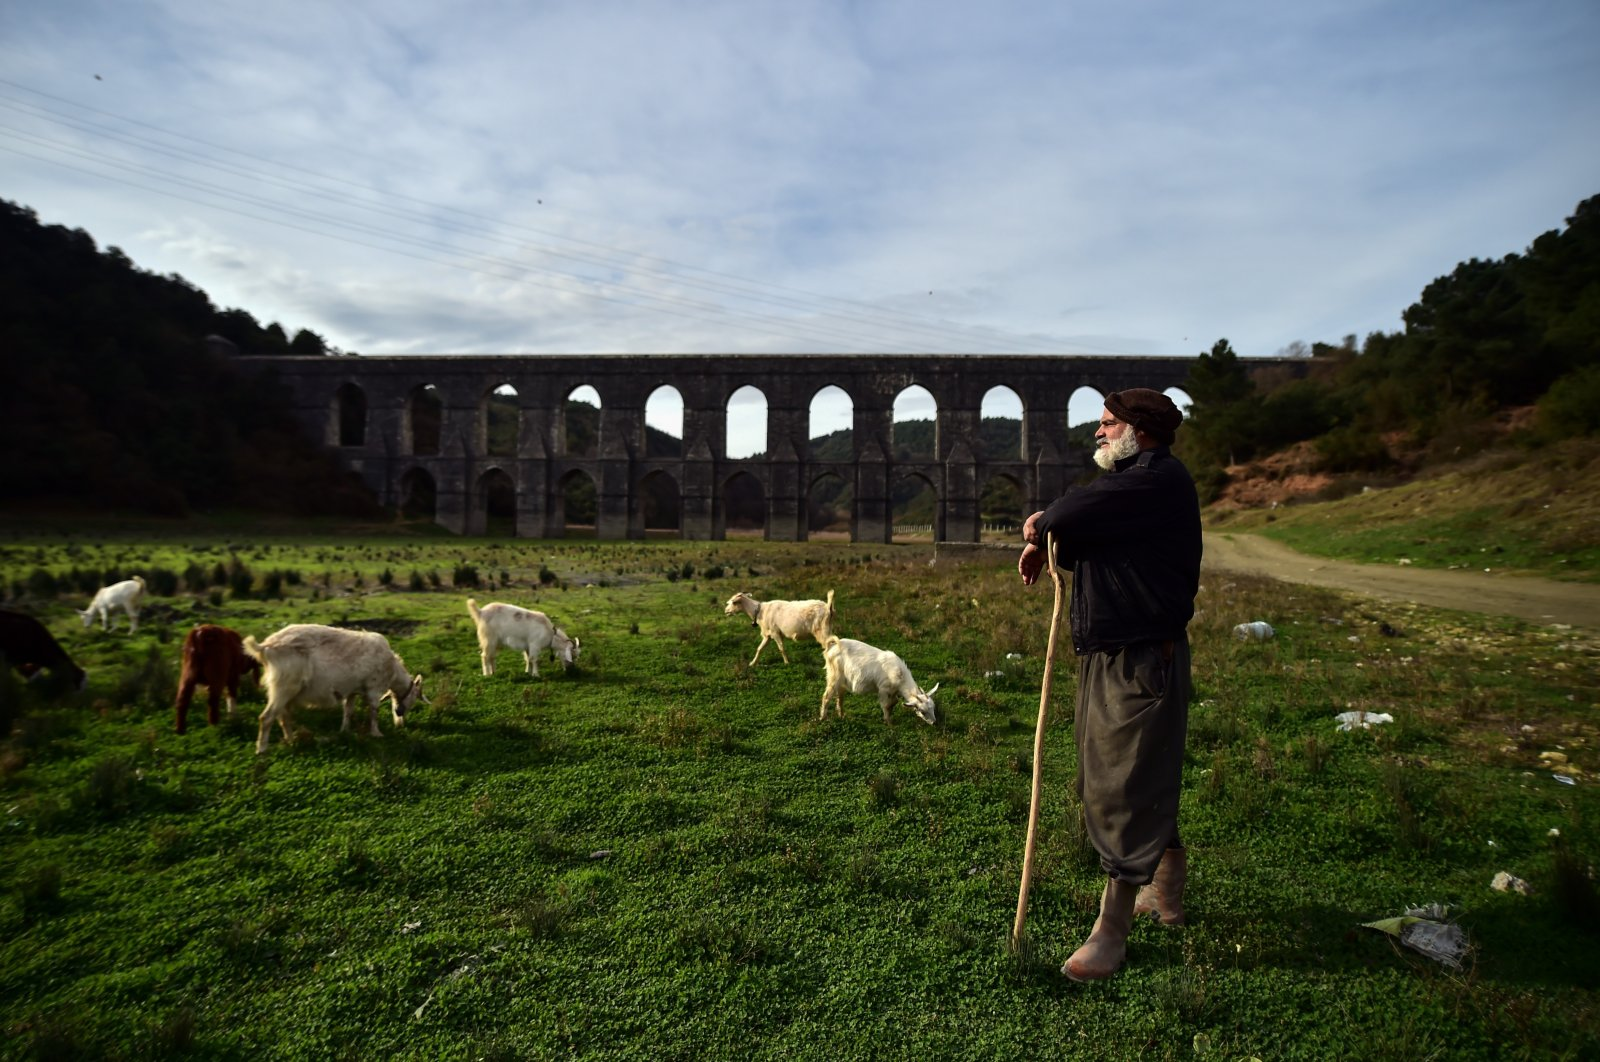 A shepherd tends to his herd as the sheep and goats graze in Alibeyköy Dam's now empty water reservoir, in Istanbul, Turkey, Jan. 8, 2021. (IHA Photo)